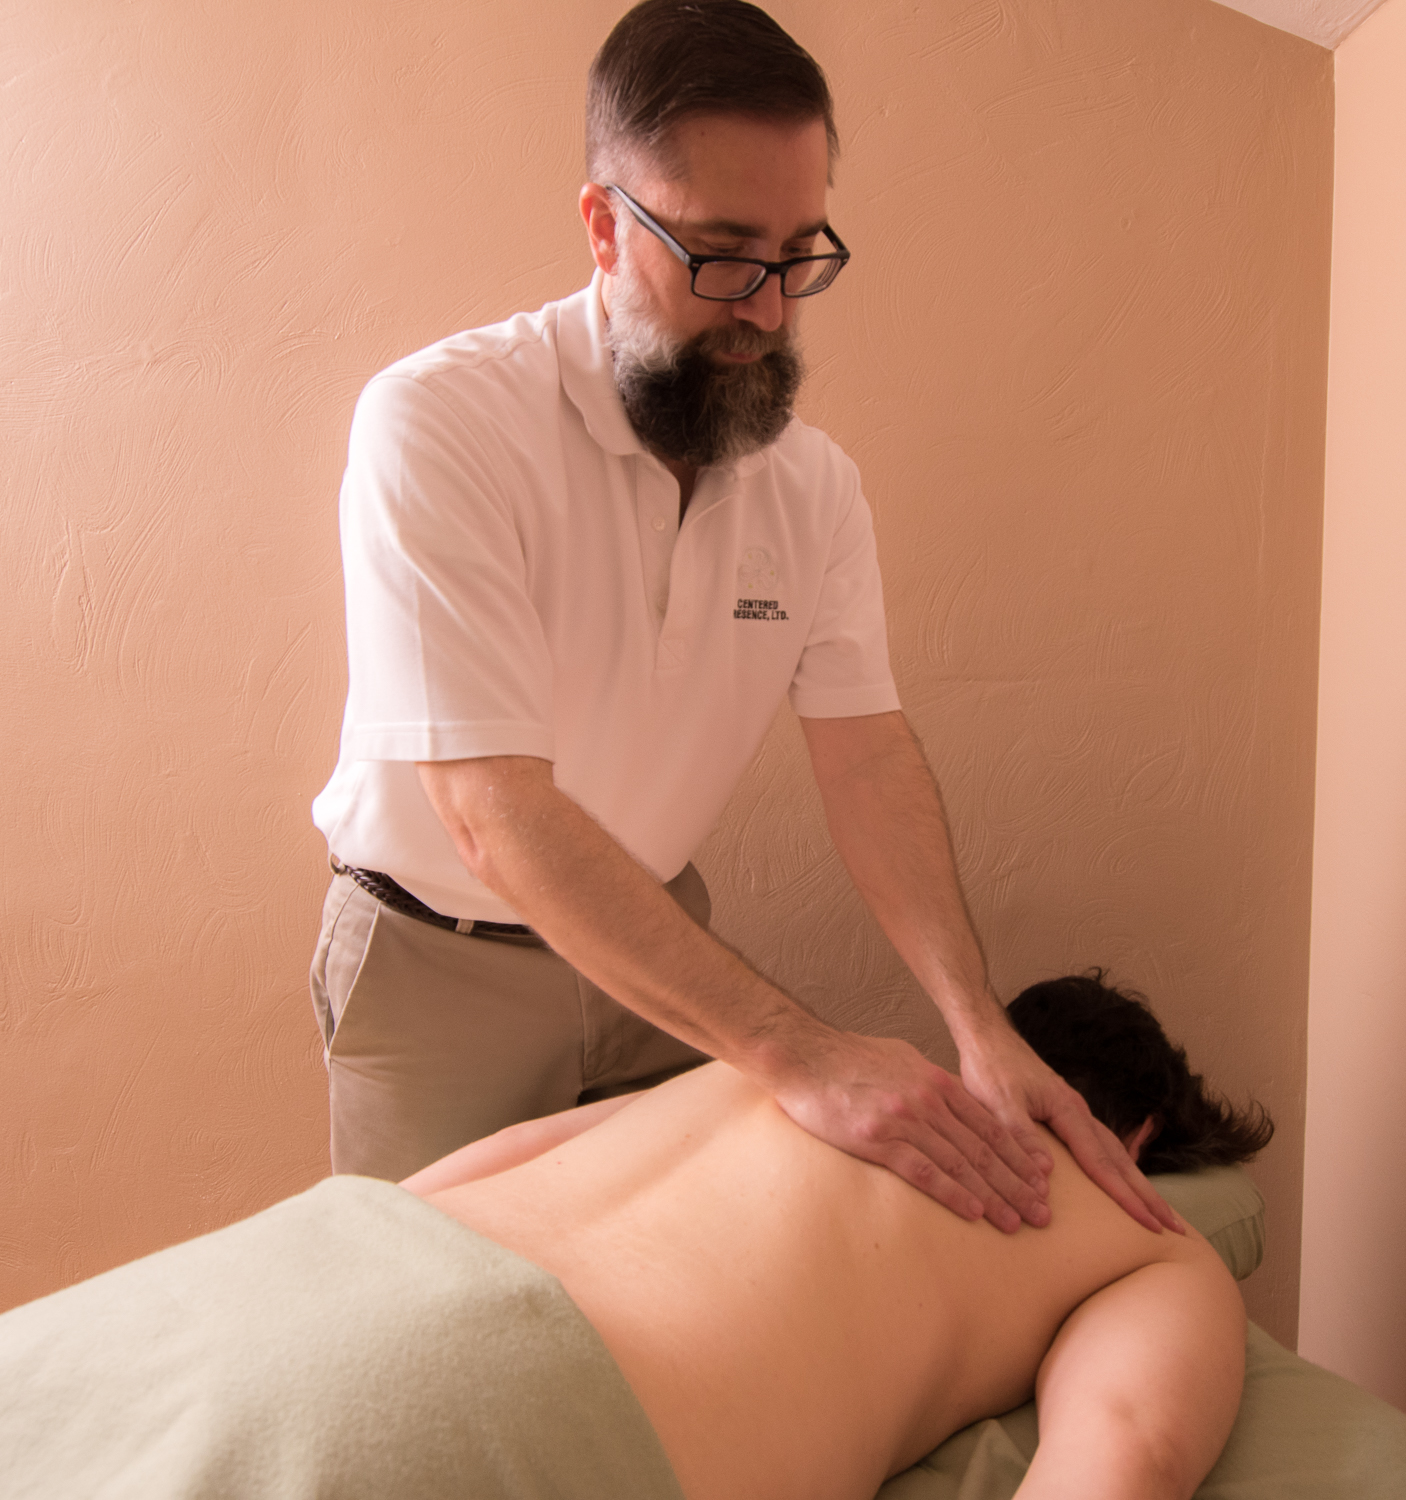 ON-SIte Massage - Centered Presence, LTD